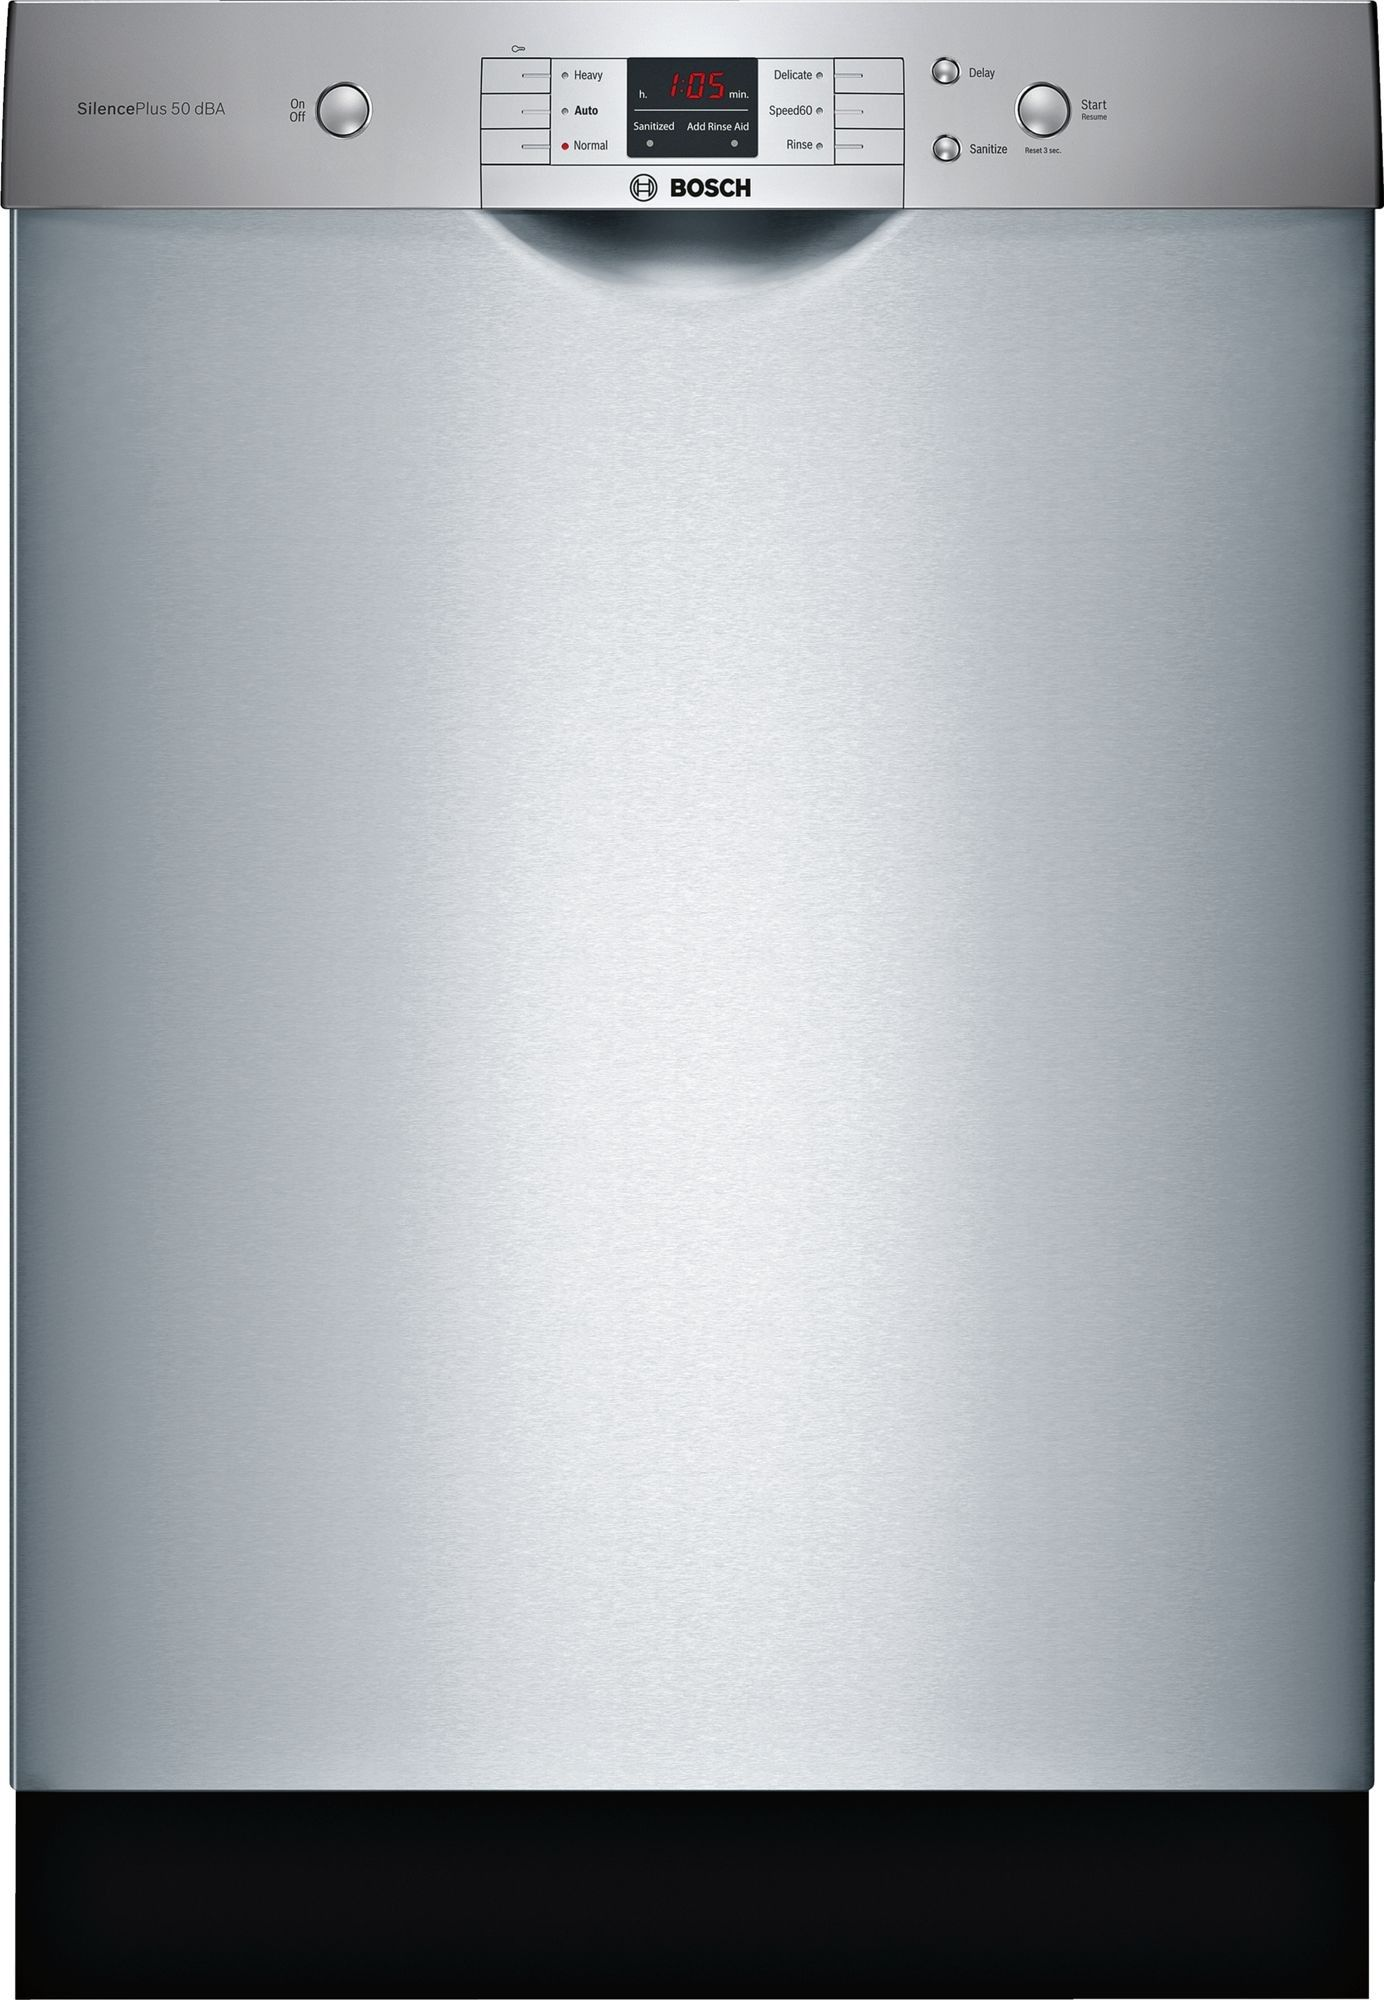 Bosch Shem3ay55n 24 Inch Full Console Built In Dishwasher With 14 Place Setting Capacity 6 Wash Cycles 50 Dba Sound Level Overflow Protection System Utilit Built In Dishwasher Steel Tub Bosch